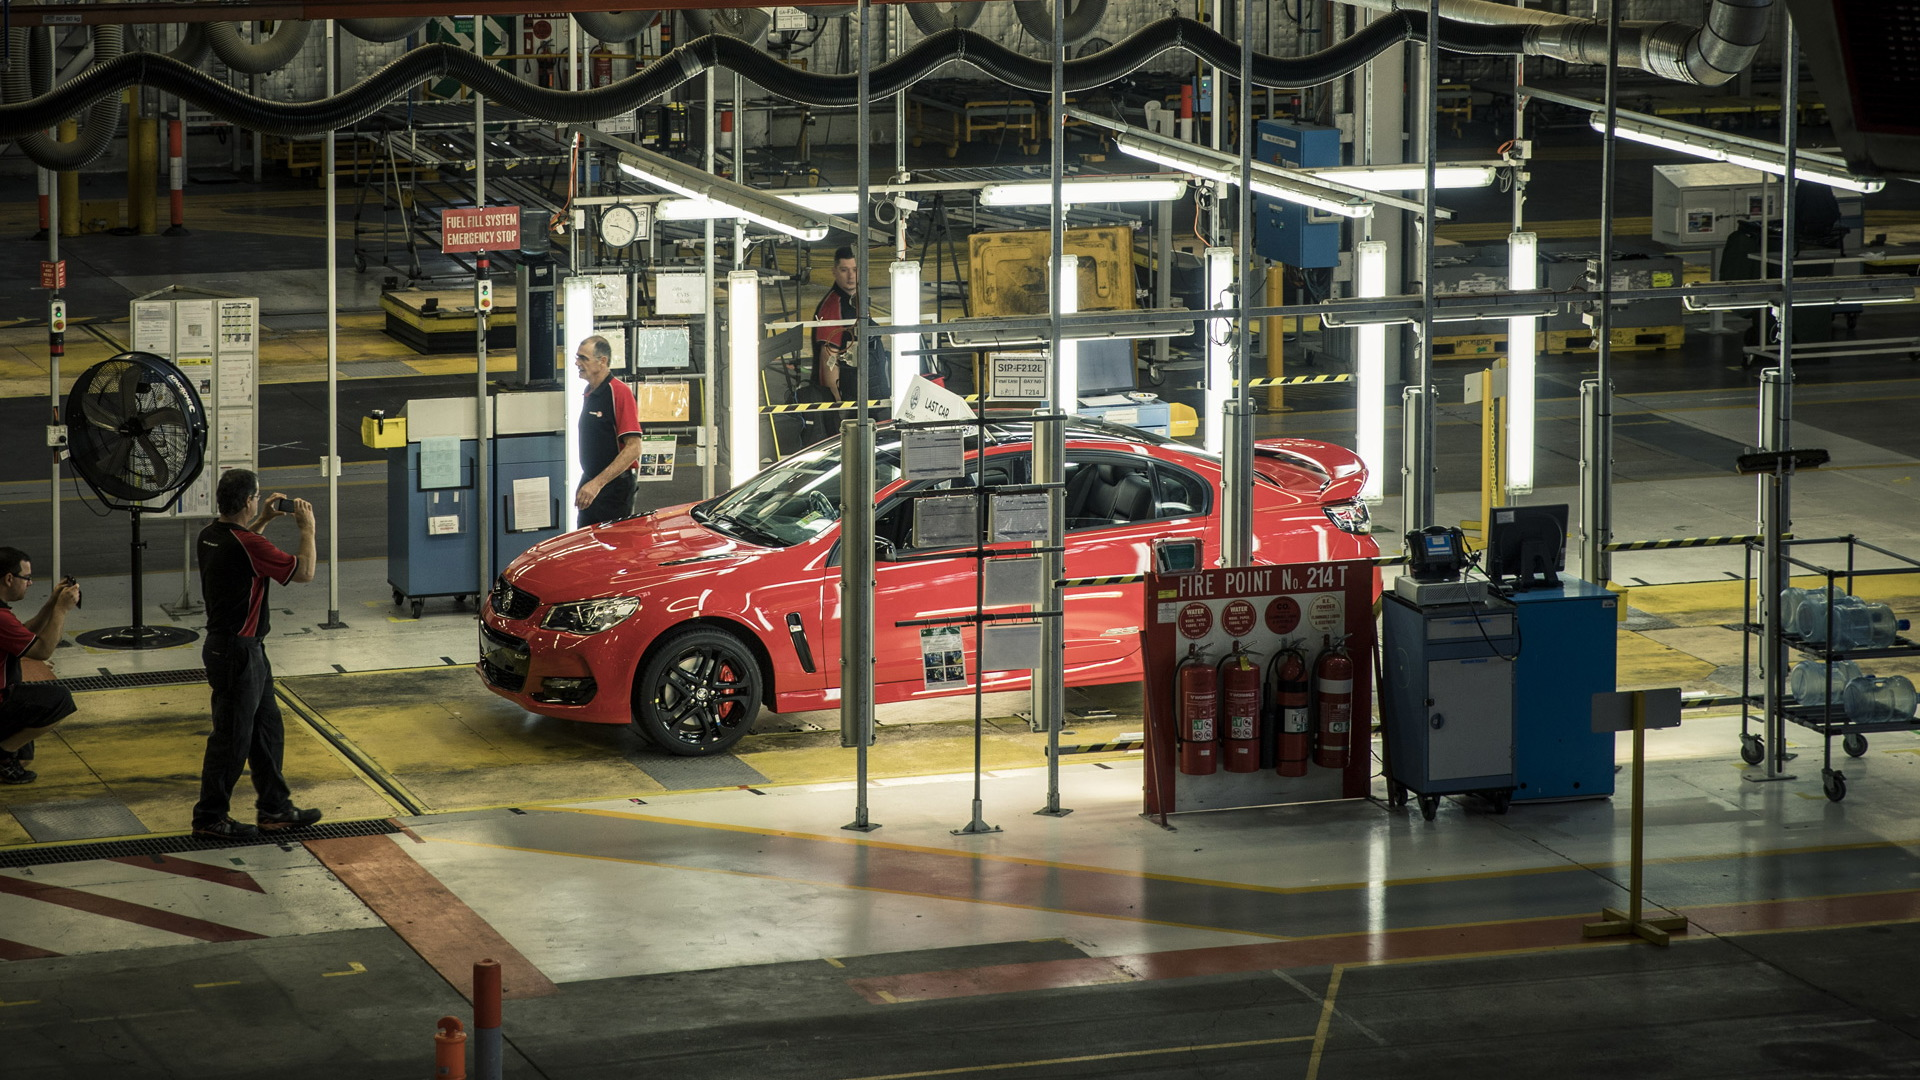 Last Holden Commodore to be built in Australia - October 2017